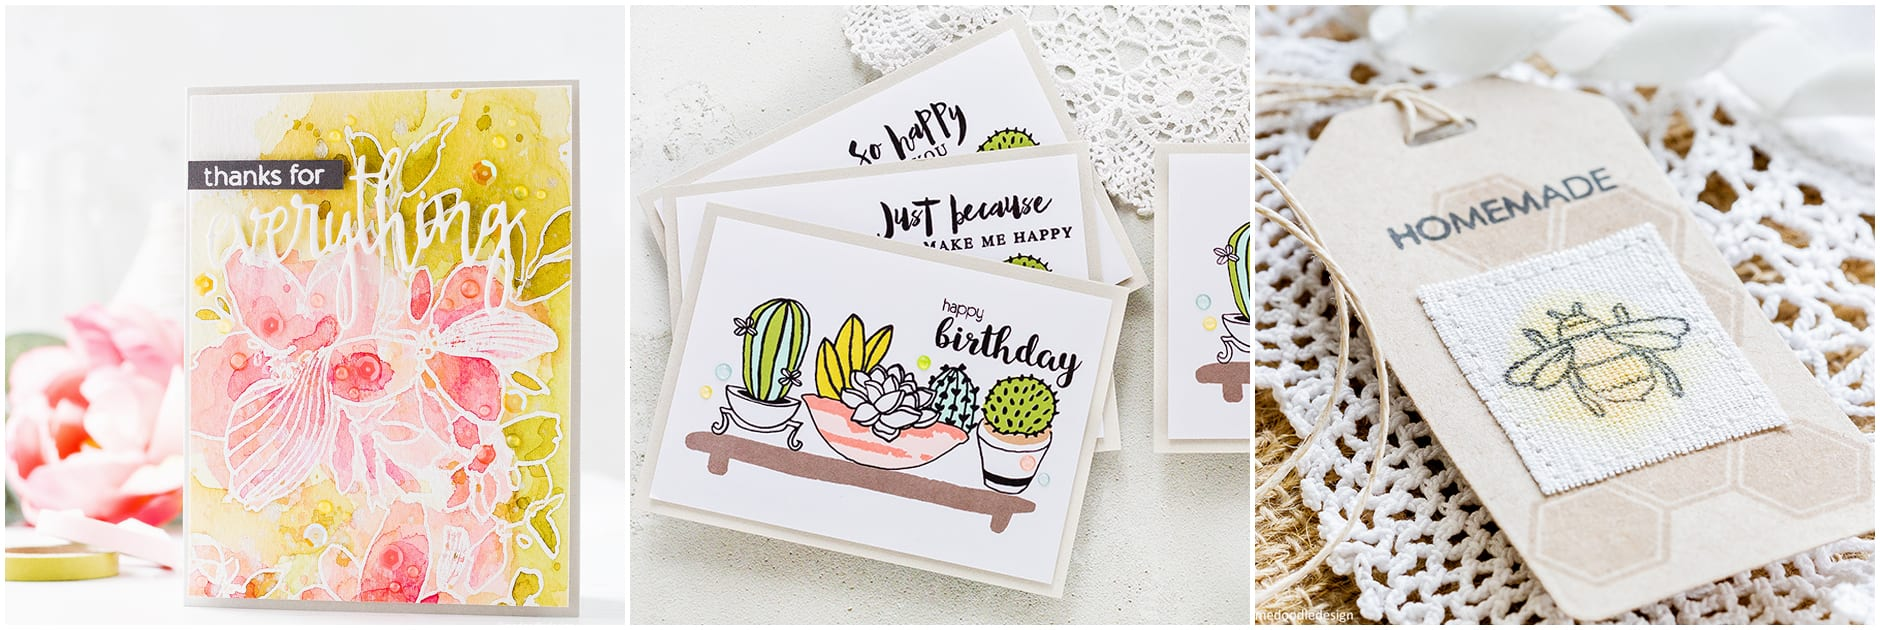 Reviewing the new July 2017 release from Altenew. Handmade cards by Debby Hughes. Find out more: http://limedoodledesign.com/2017/07/altenew-july-2017-release-blog-hop-giveaway/